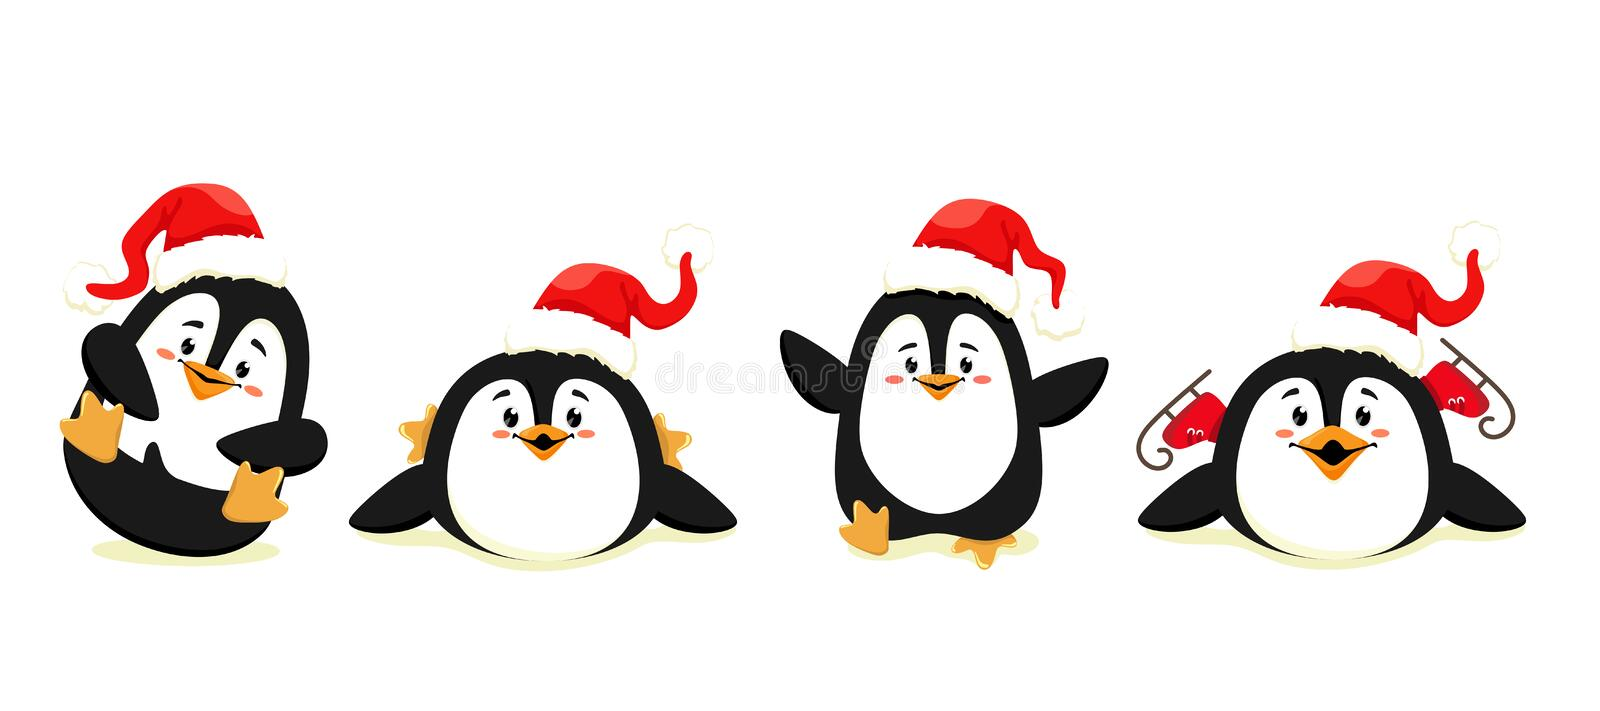 Set of cute and funny penguins in motion with red caps. Christmas penguins. Vector isolates on a white background. royalty free illustration